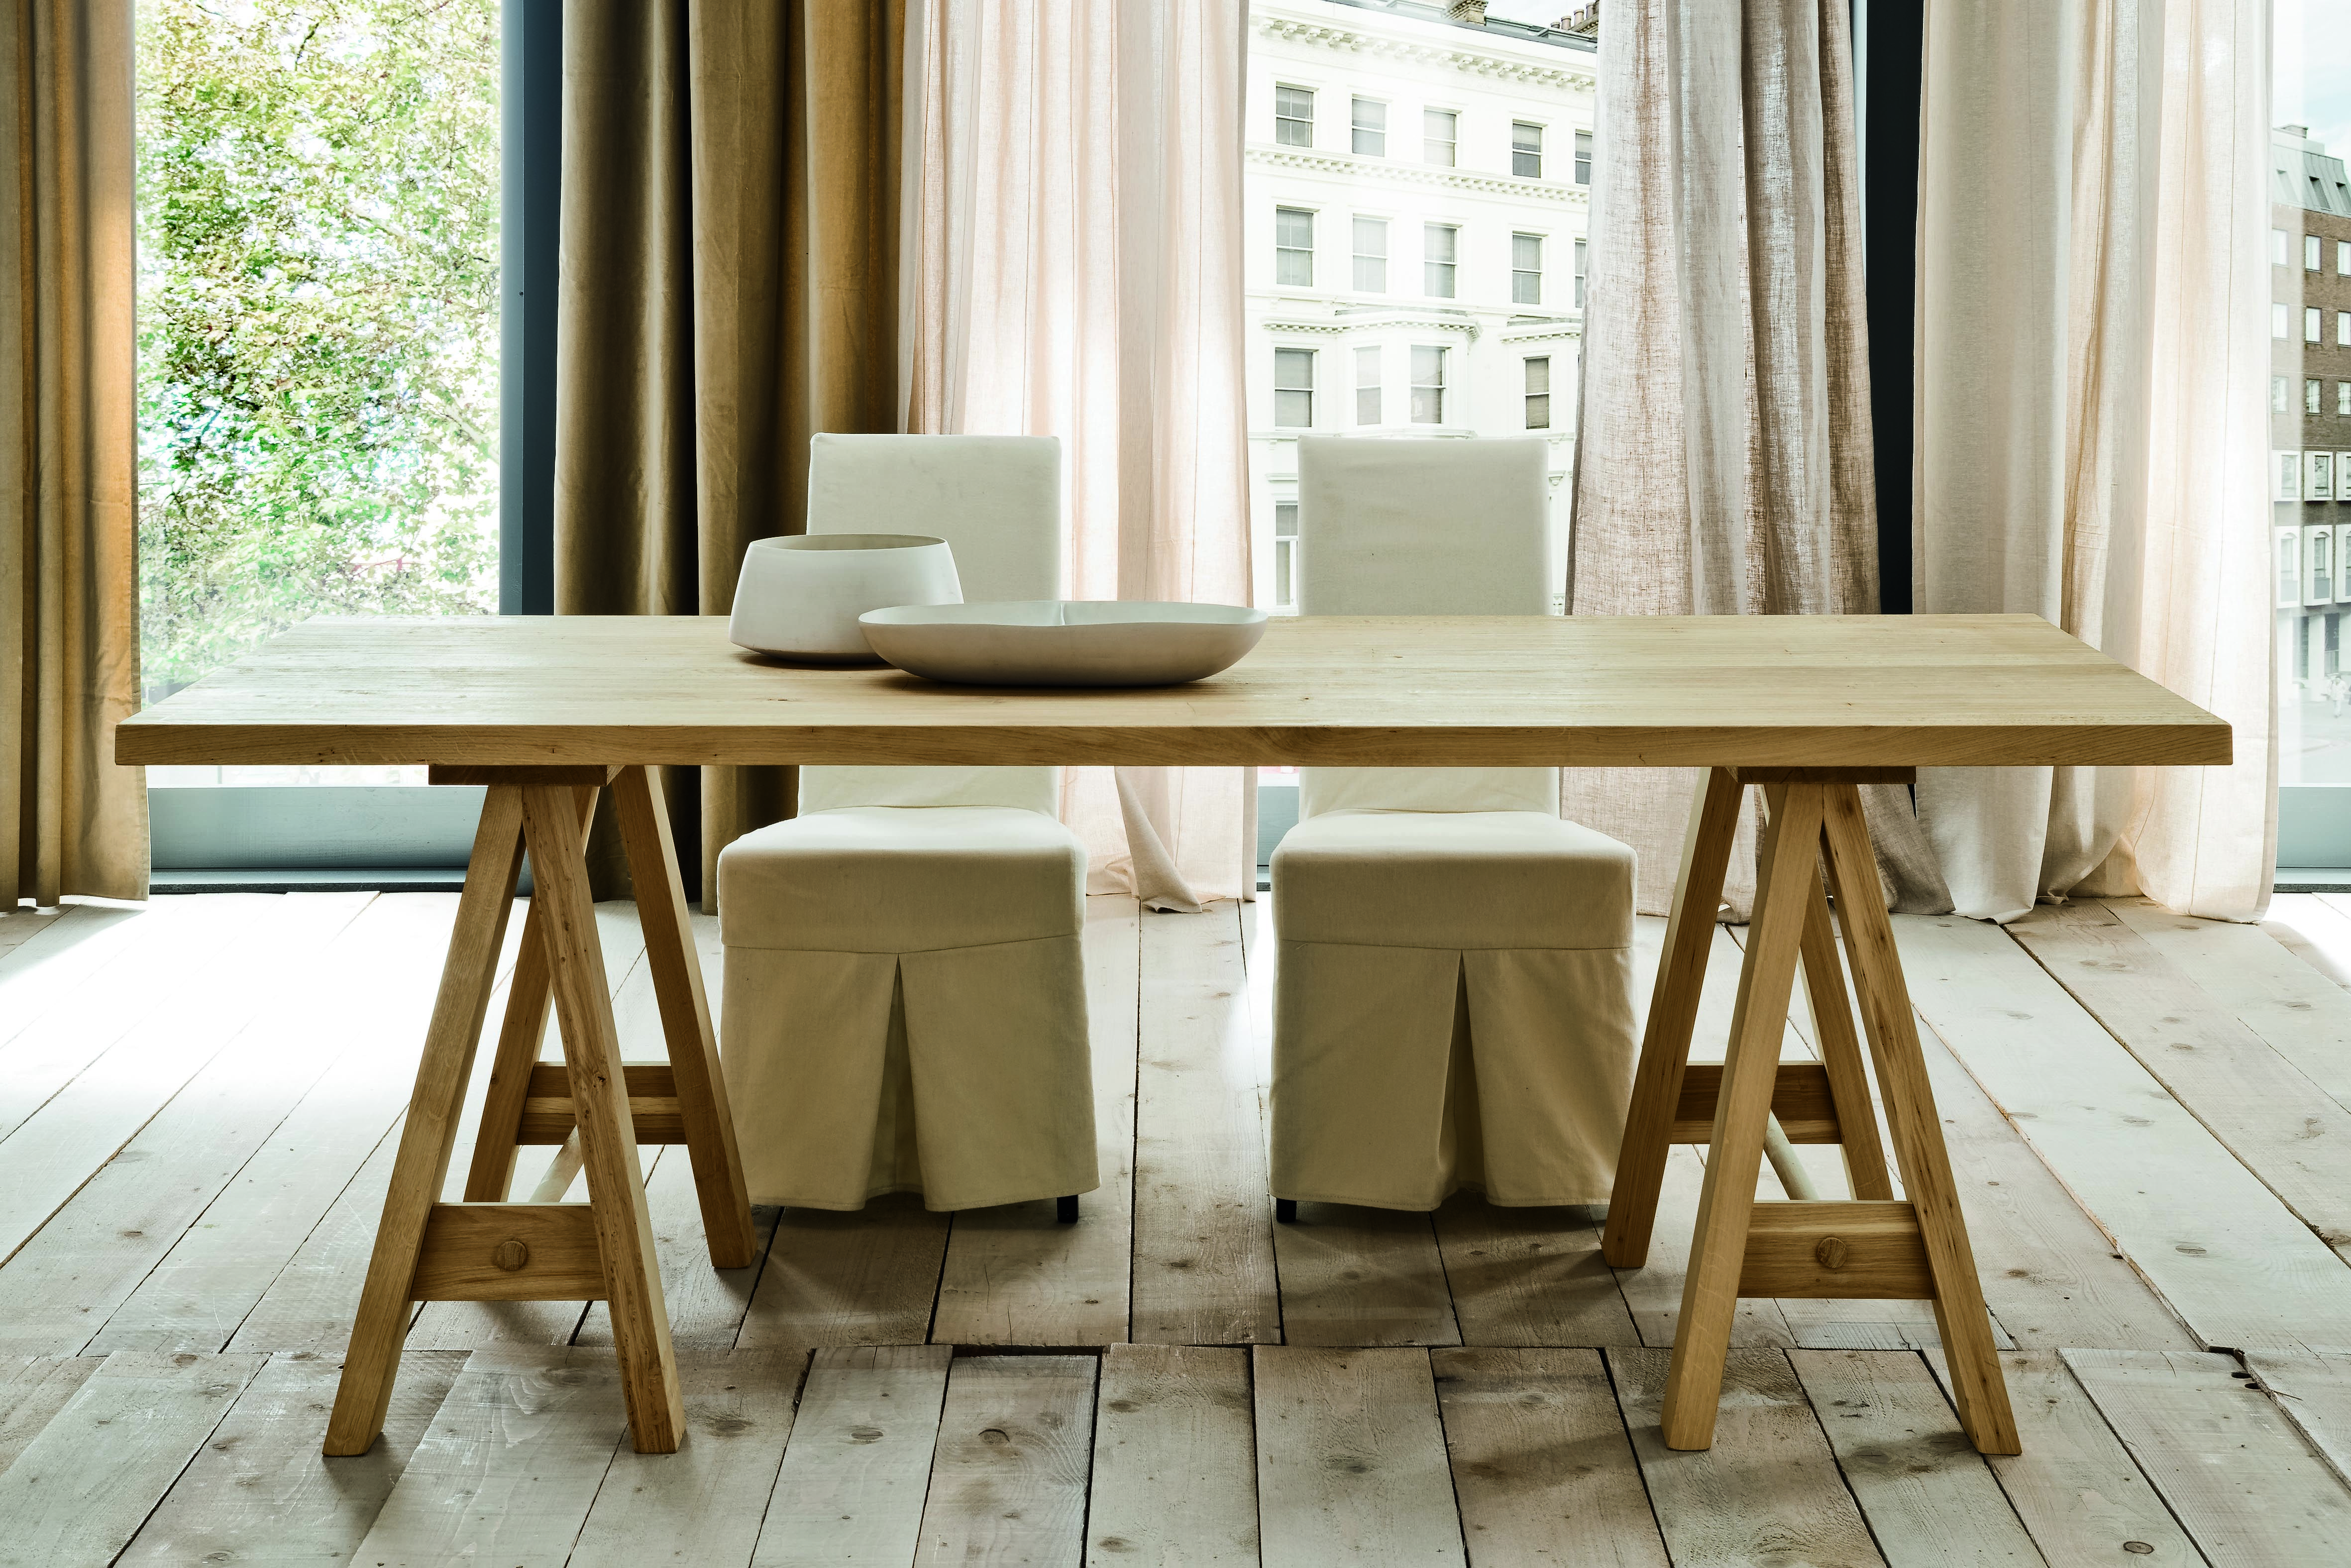 Parigi Table With Horse Legs By Altacorte Ecolab Collection